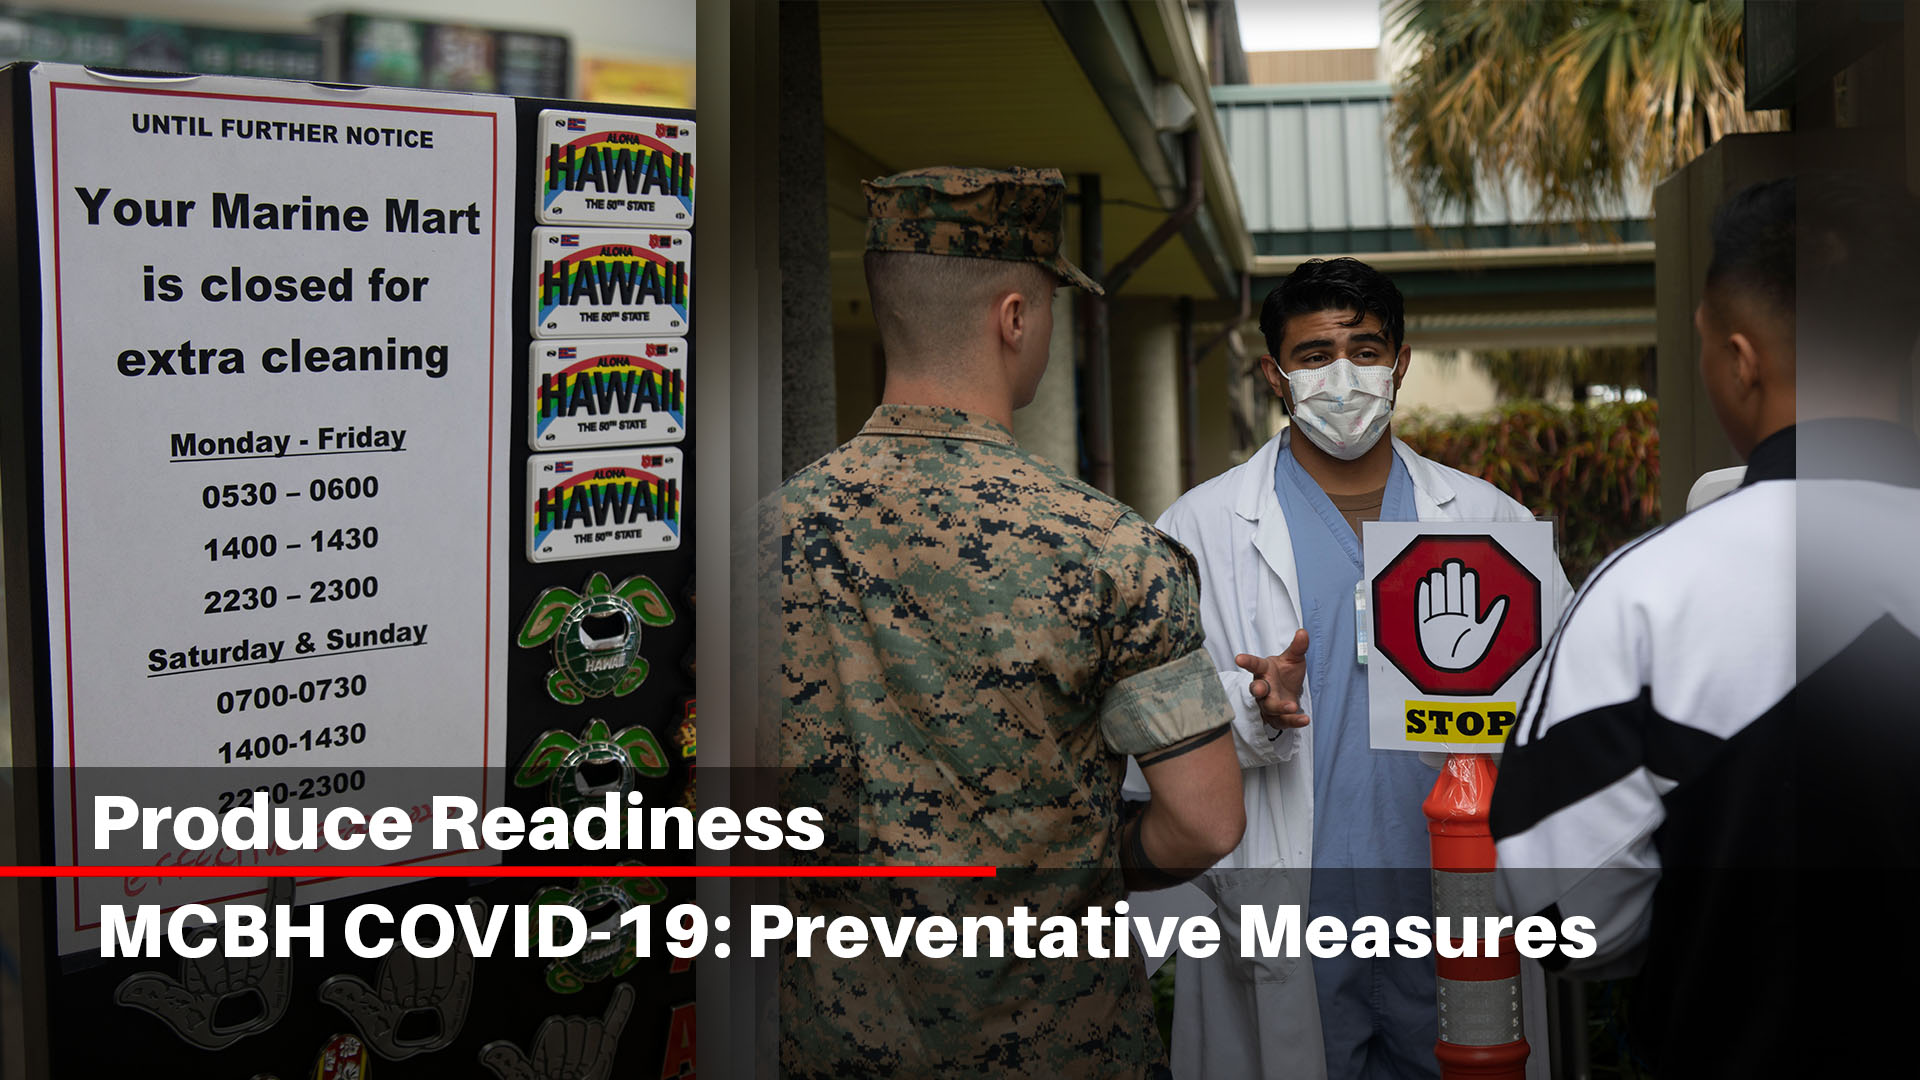 MCBH COVID-19: Preventative Measure